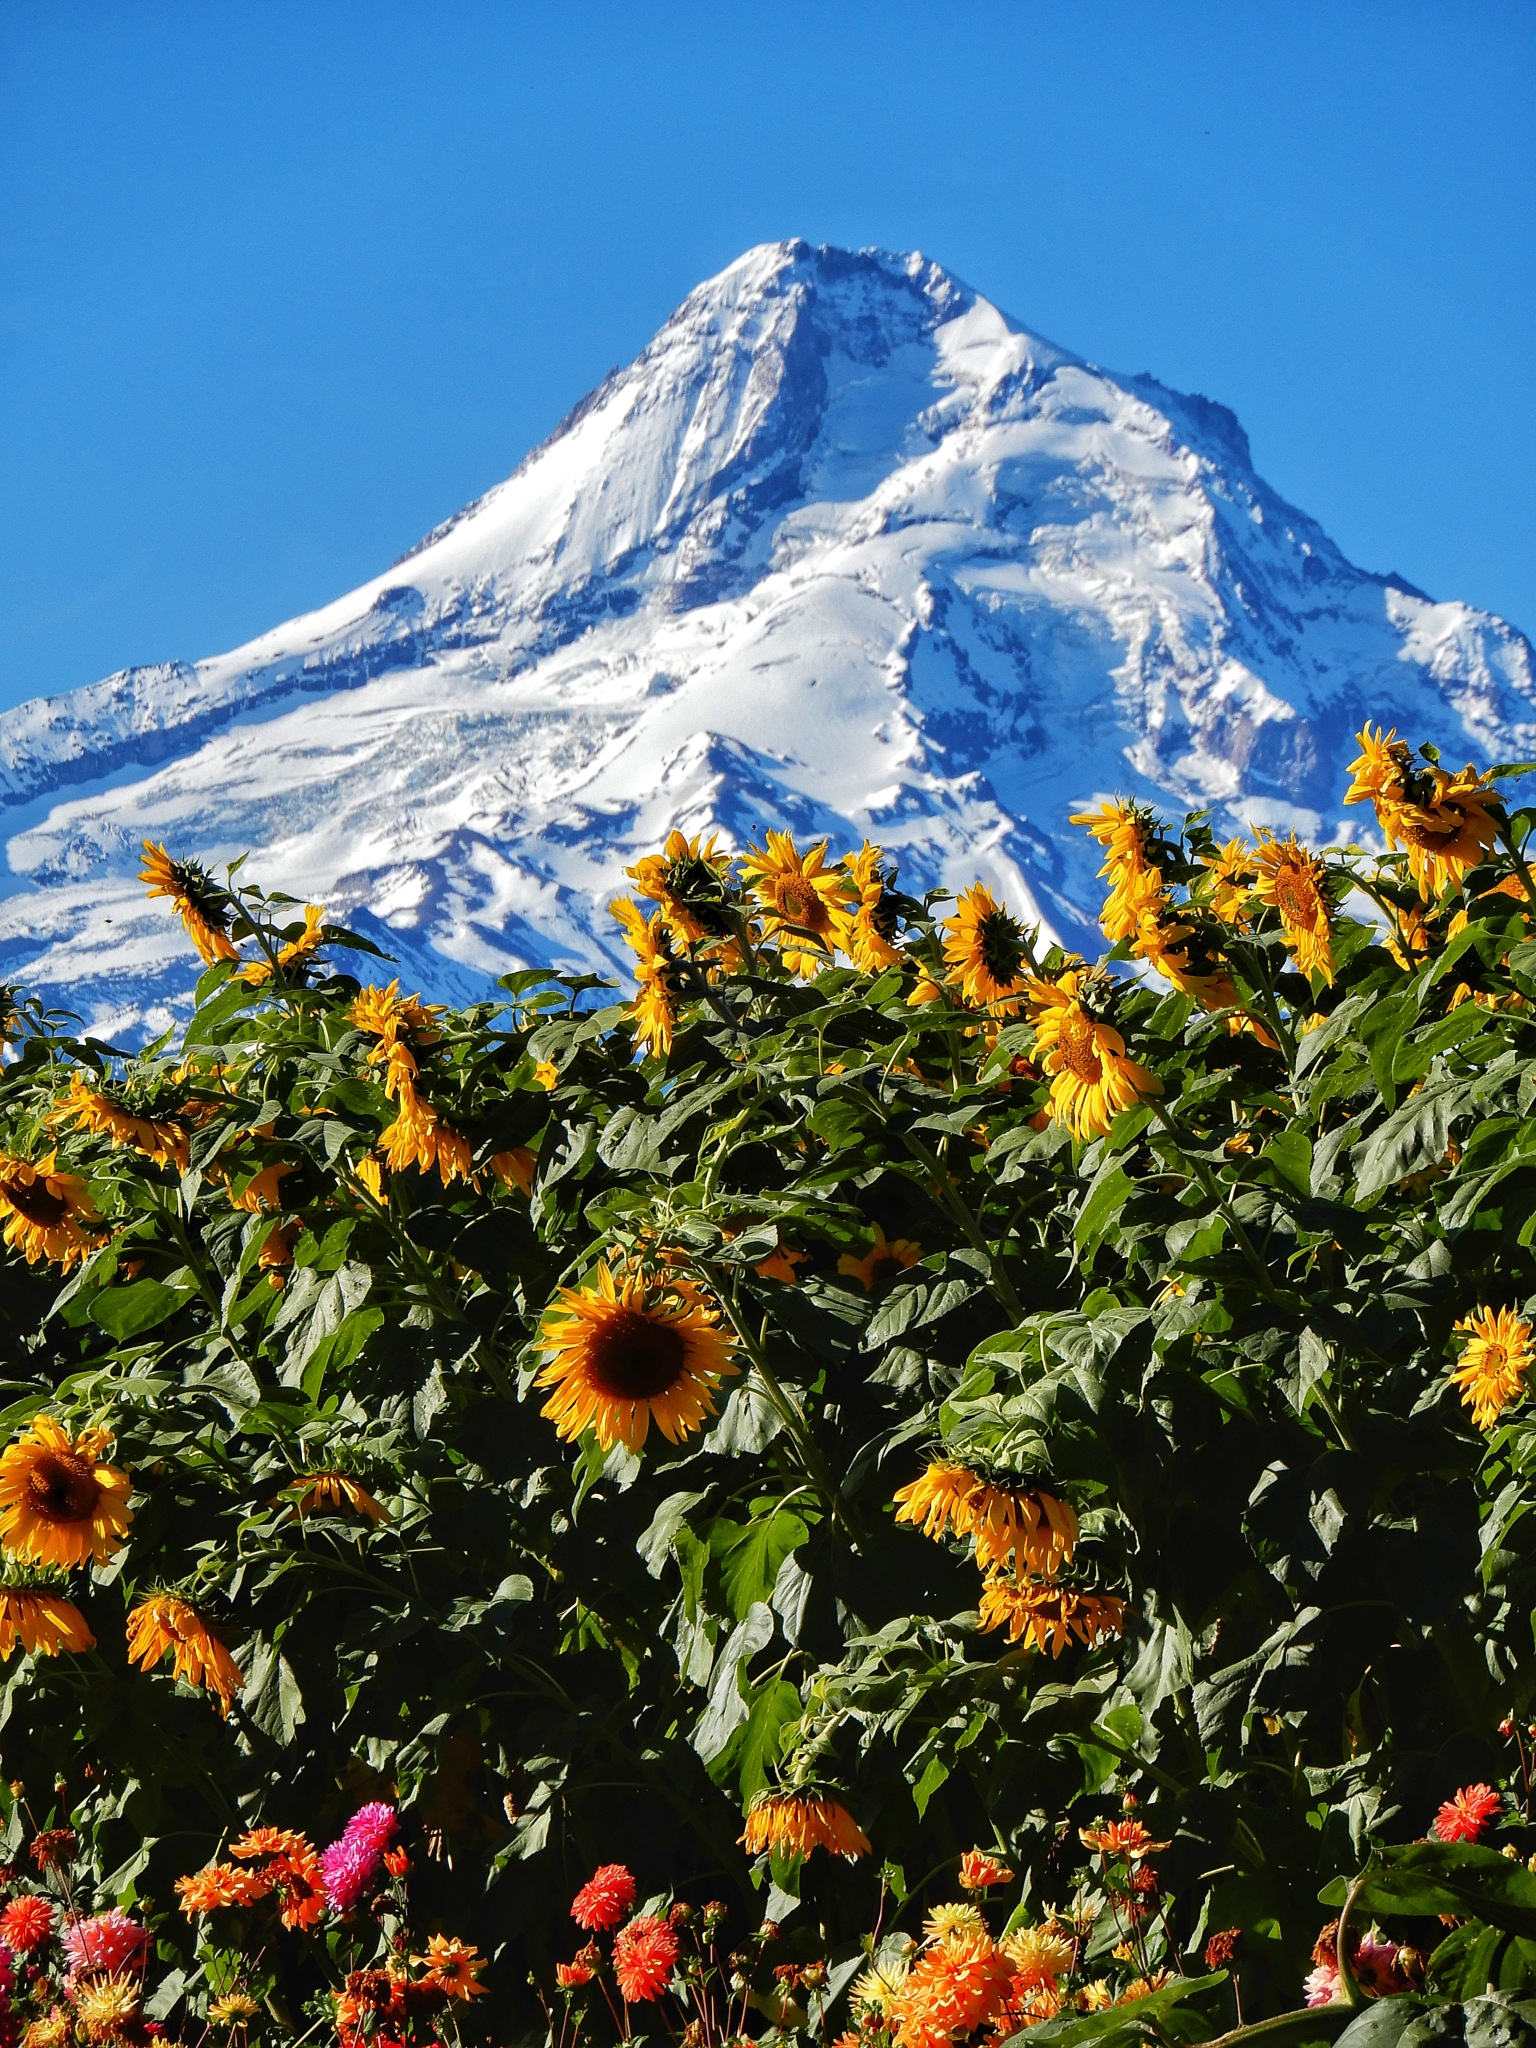 Volcano with sunflowers  by Jackie06